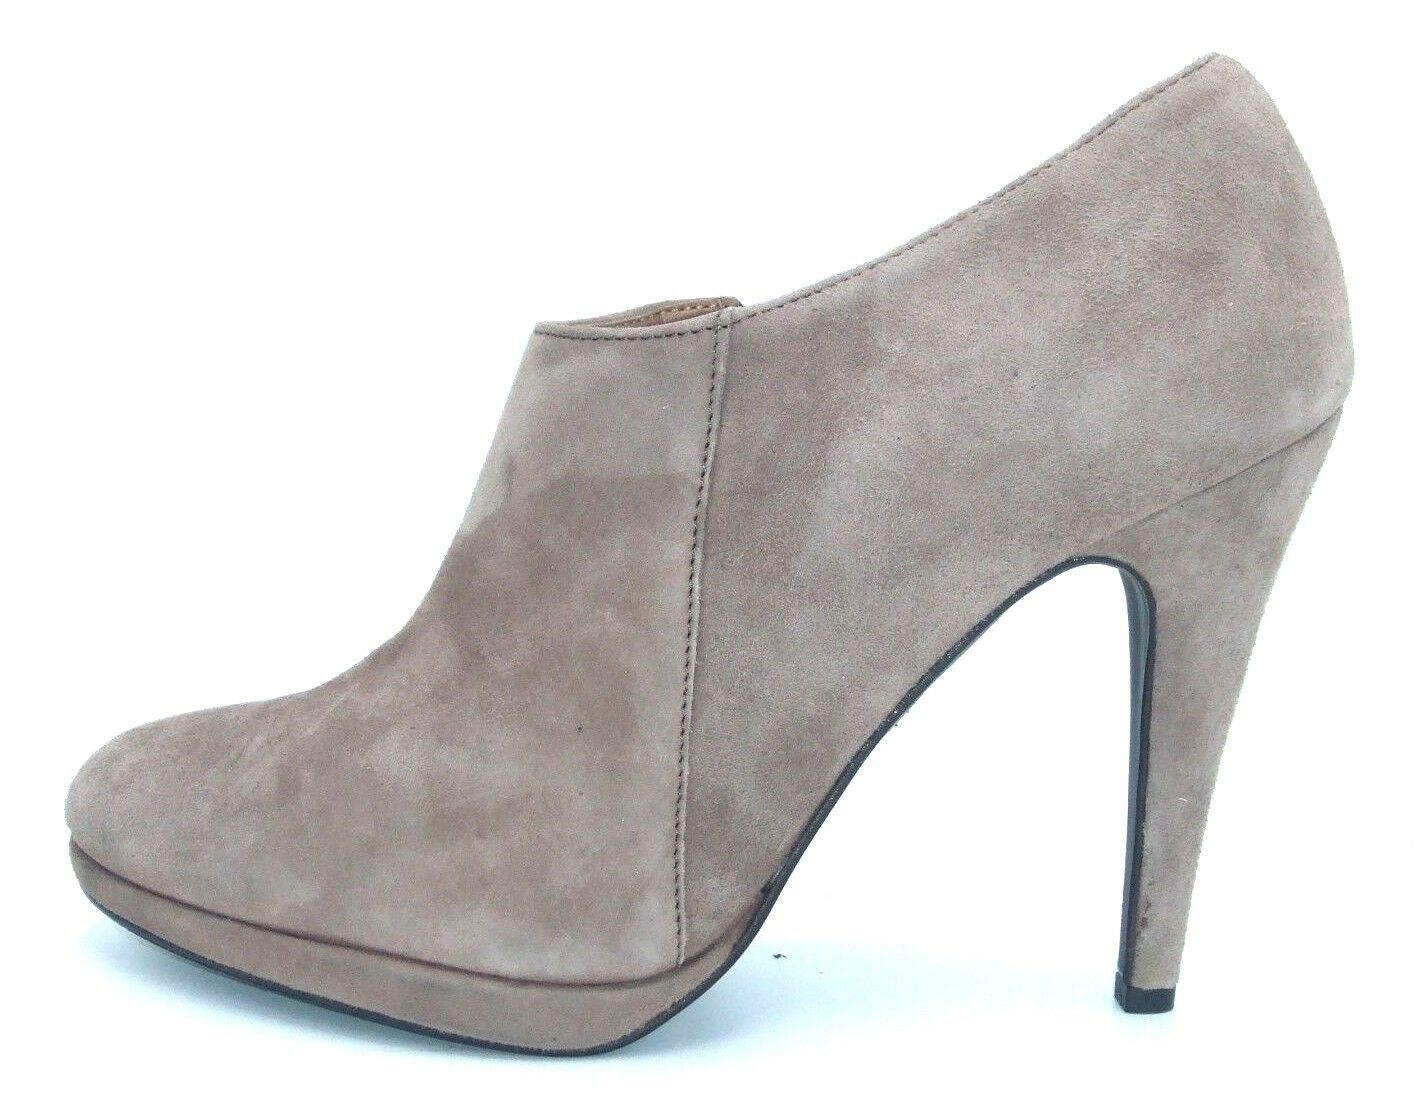 RRP £115 DUNE SIZE 8 41 NBMORB TBUPE REBL LEBTHER SUEDE HIGH HEEL BNKLE BOOTS BN